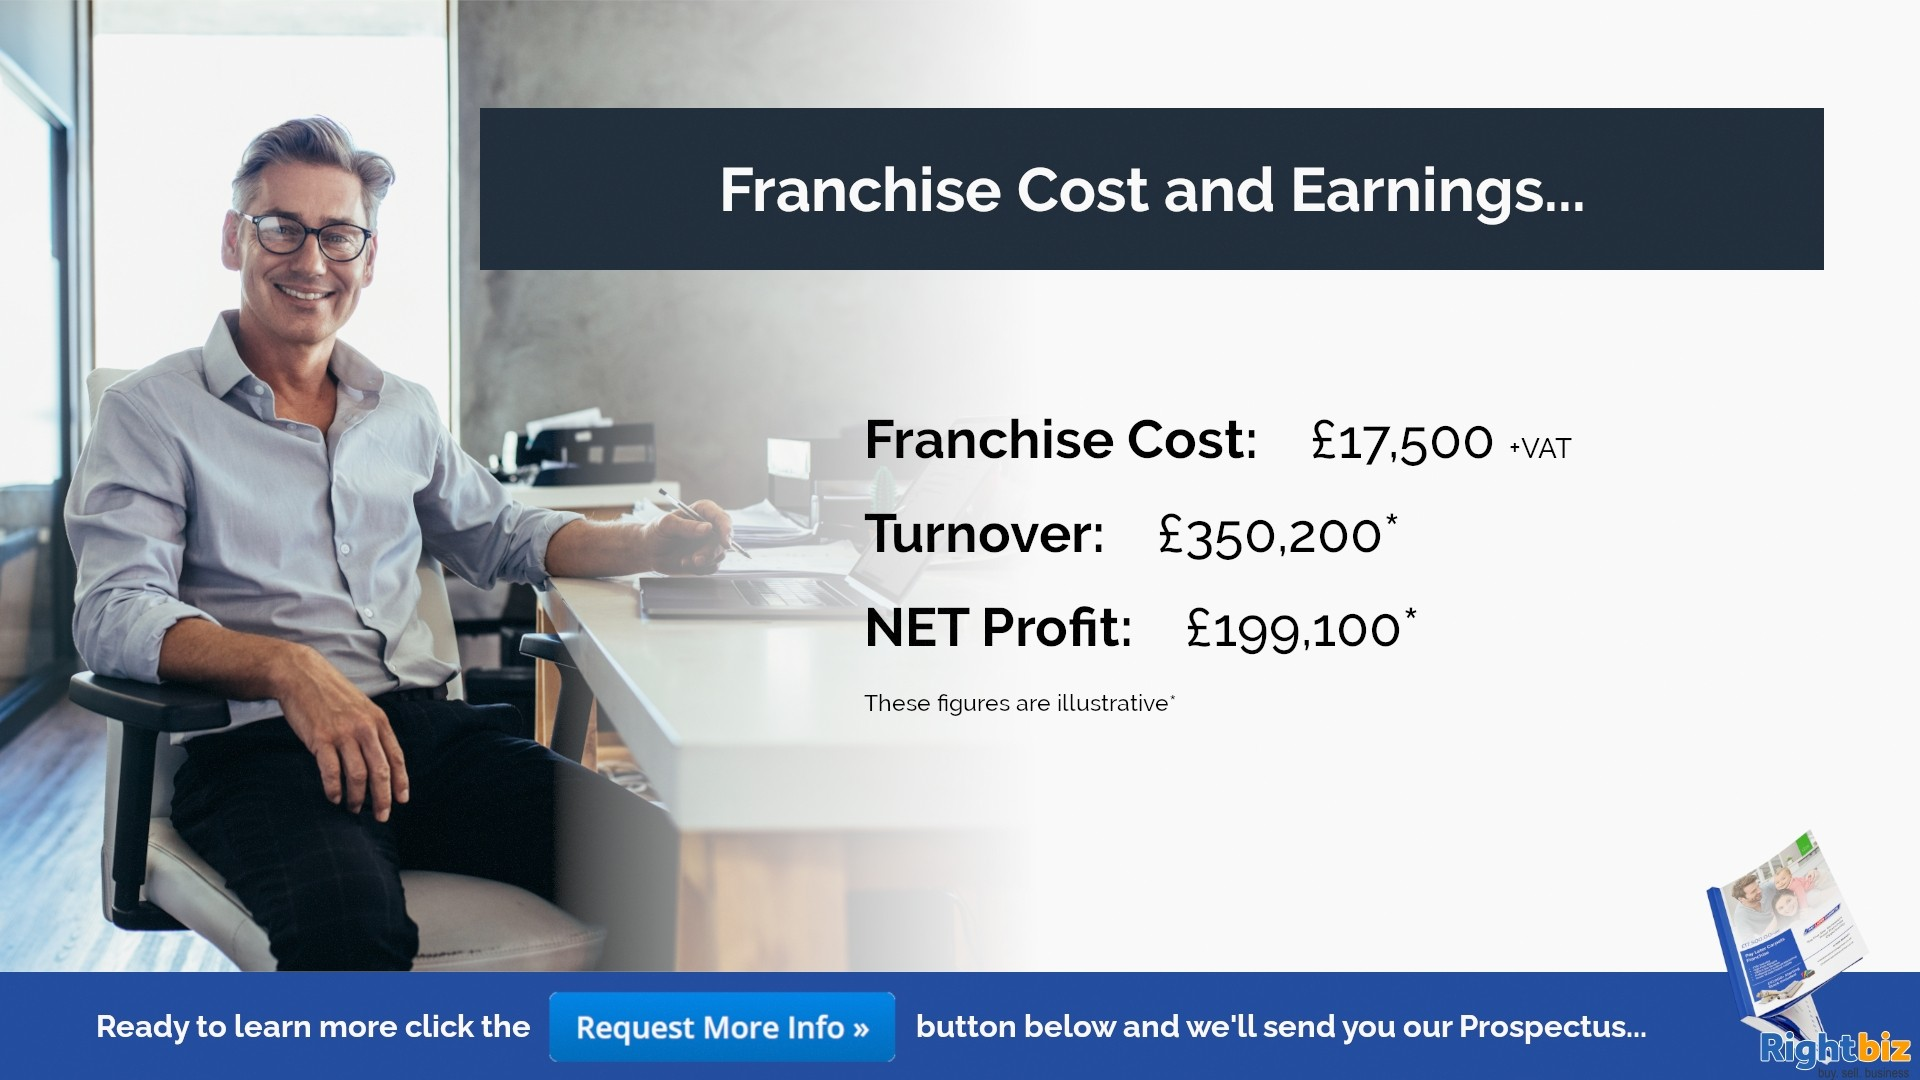 Pay Later Carpets Franchise Salisbury Our First Franchisee Made £11,000+ Profit in Month One - Image 5